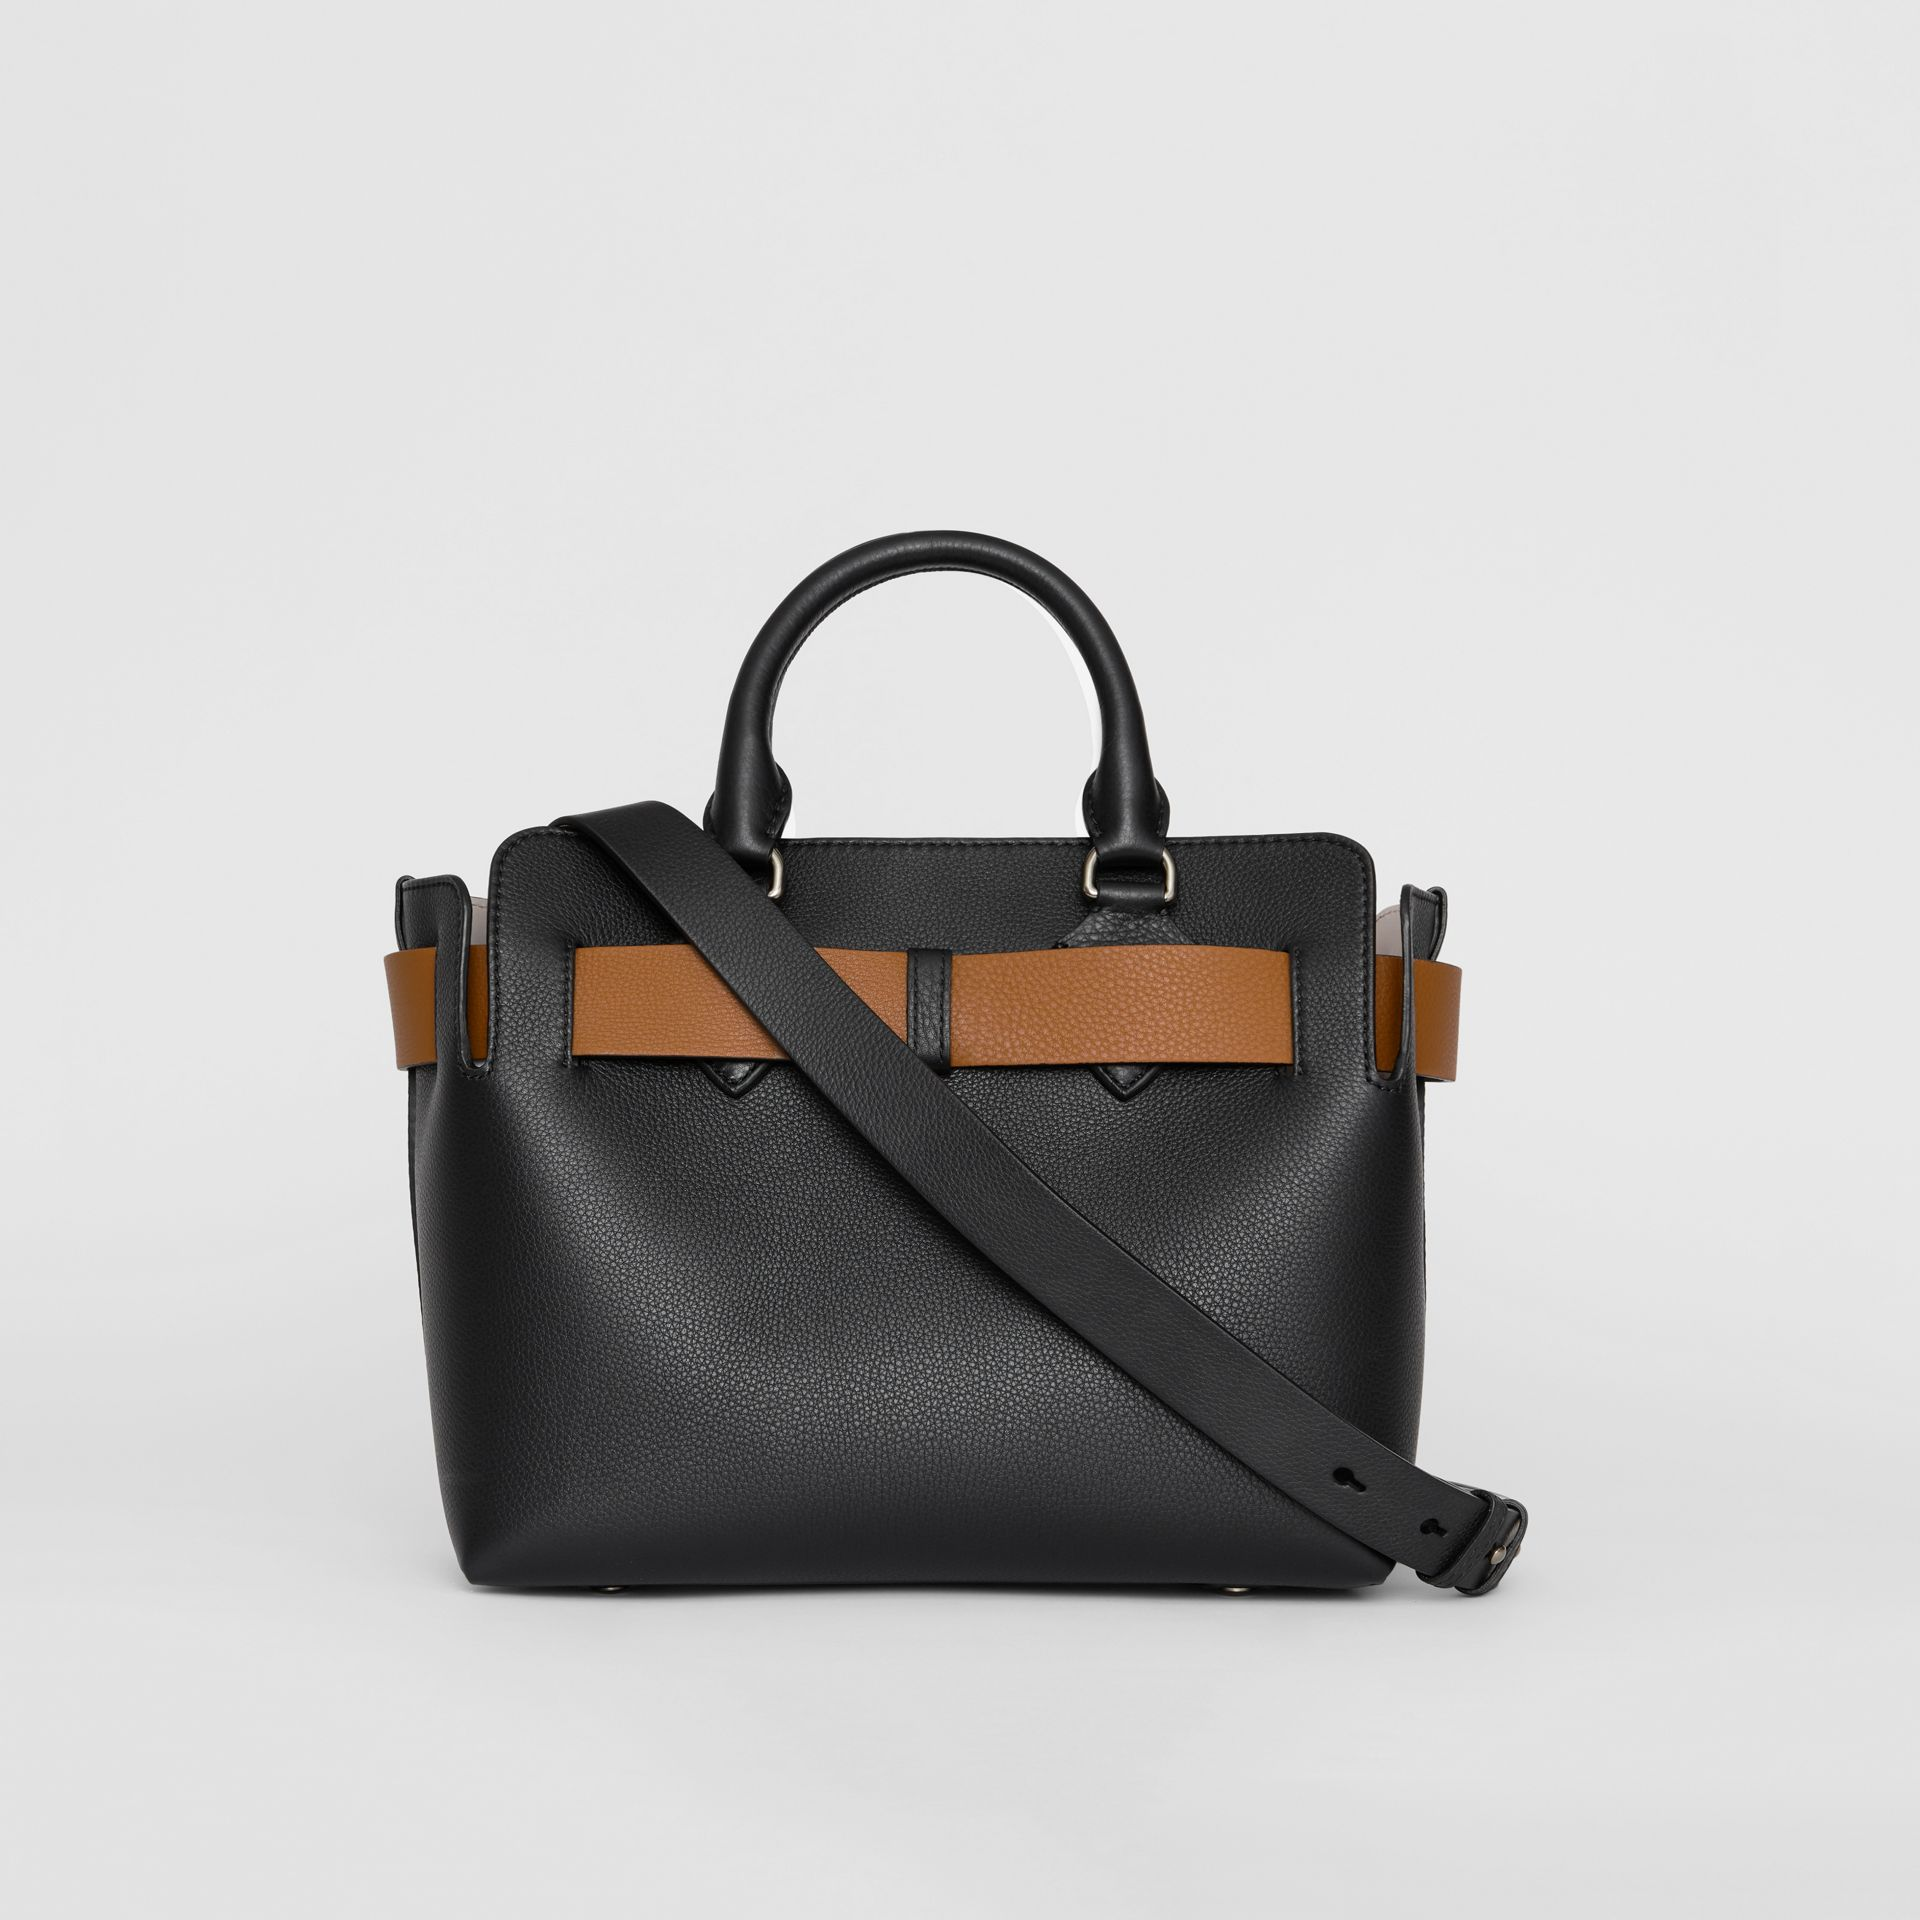 Petit sac The Belt en cuir (Noir) - Femme | Burberry - photo de la galerie 7